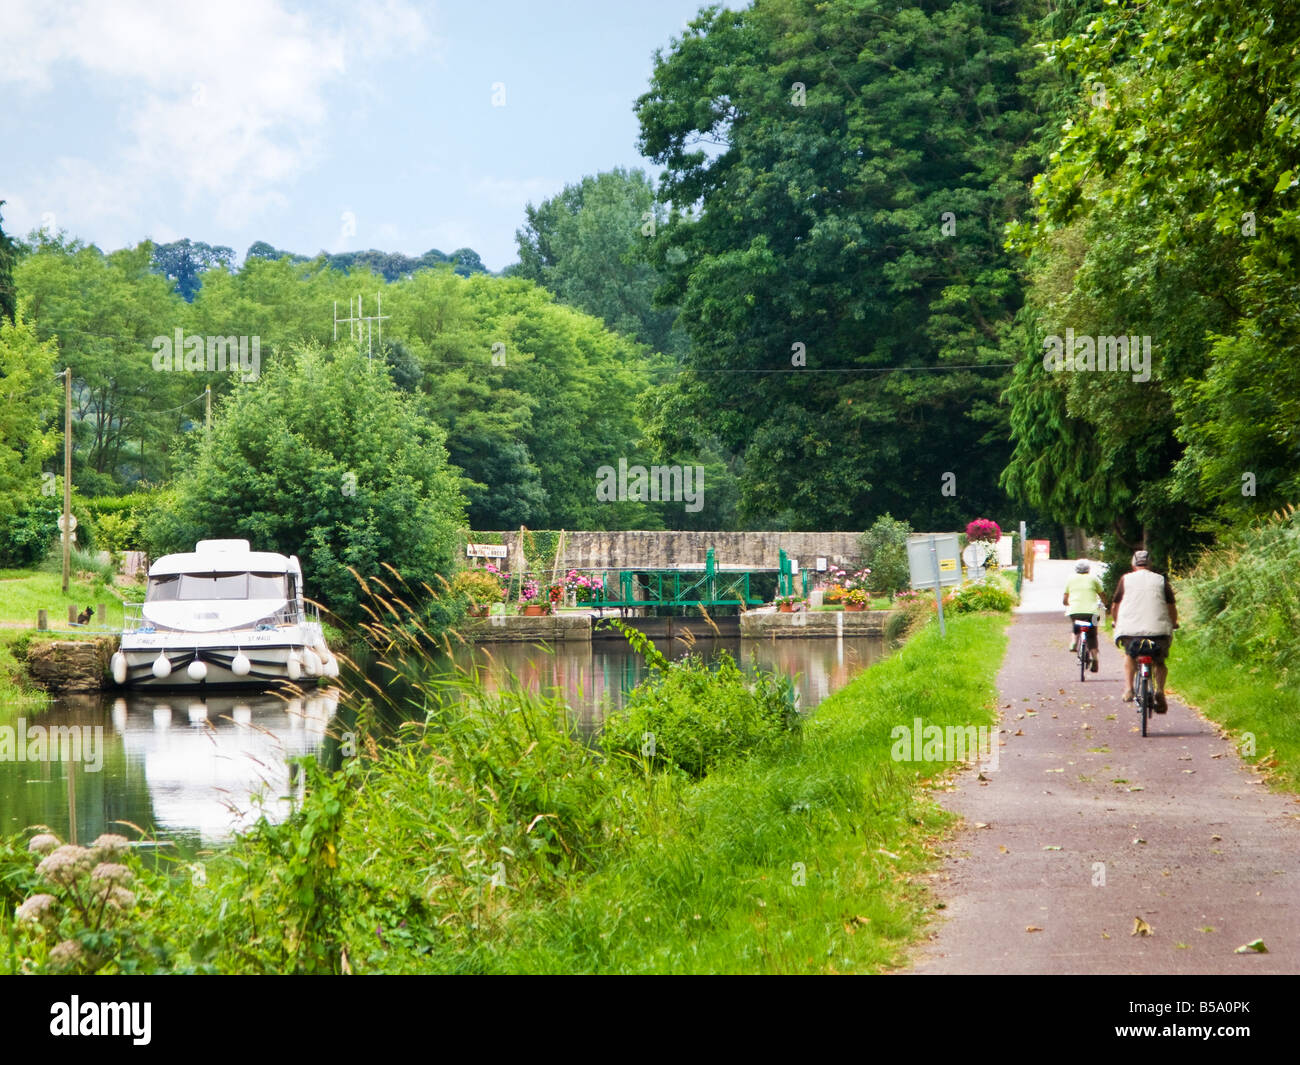 Cyclists on the towpath at a Lock on the Nantes Brest Canal at Cadoret, Morbihan, Brittany, France Europe - Stock Image